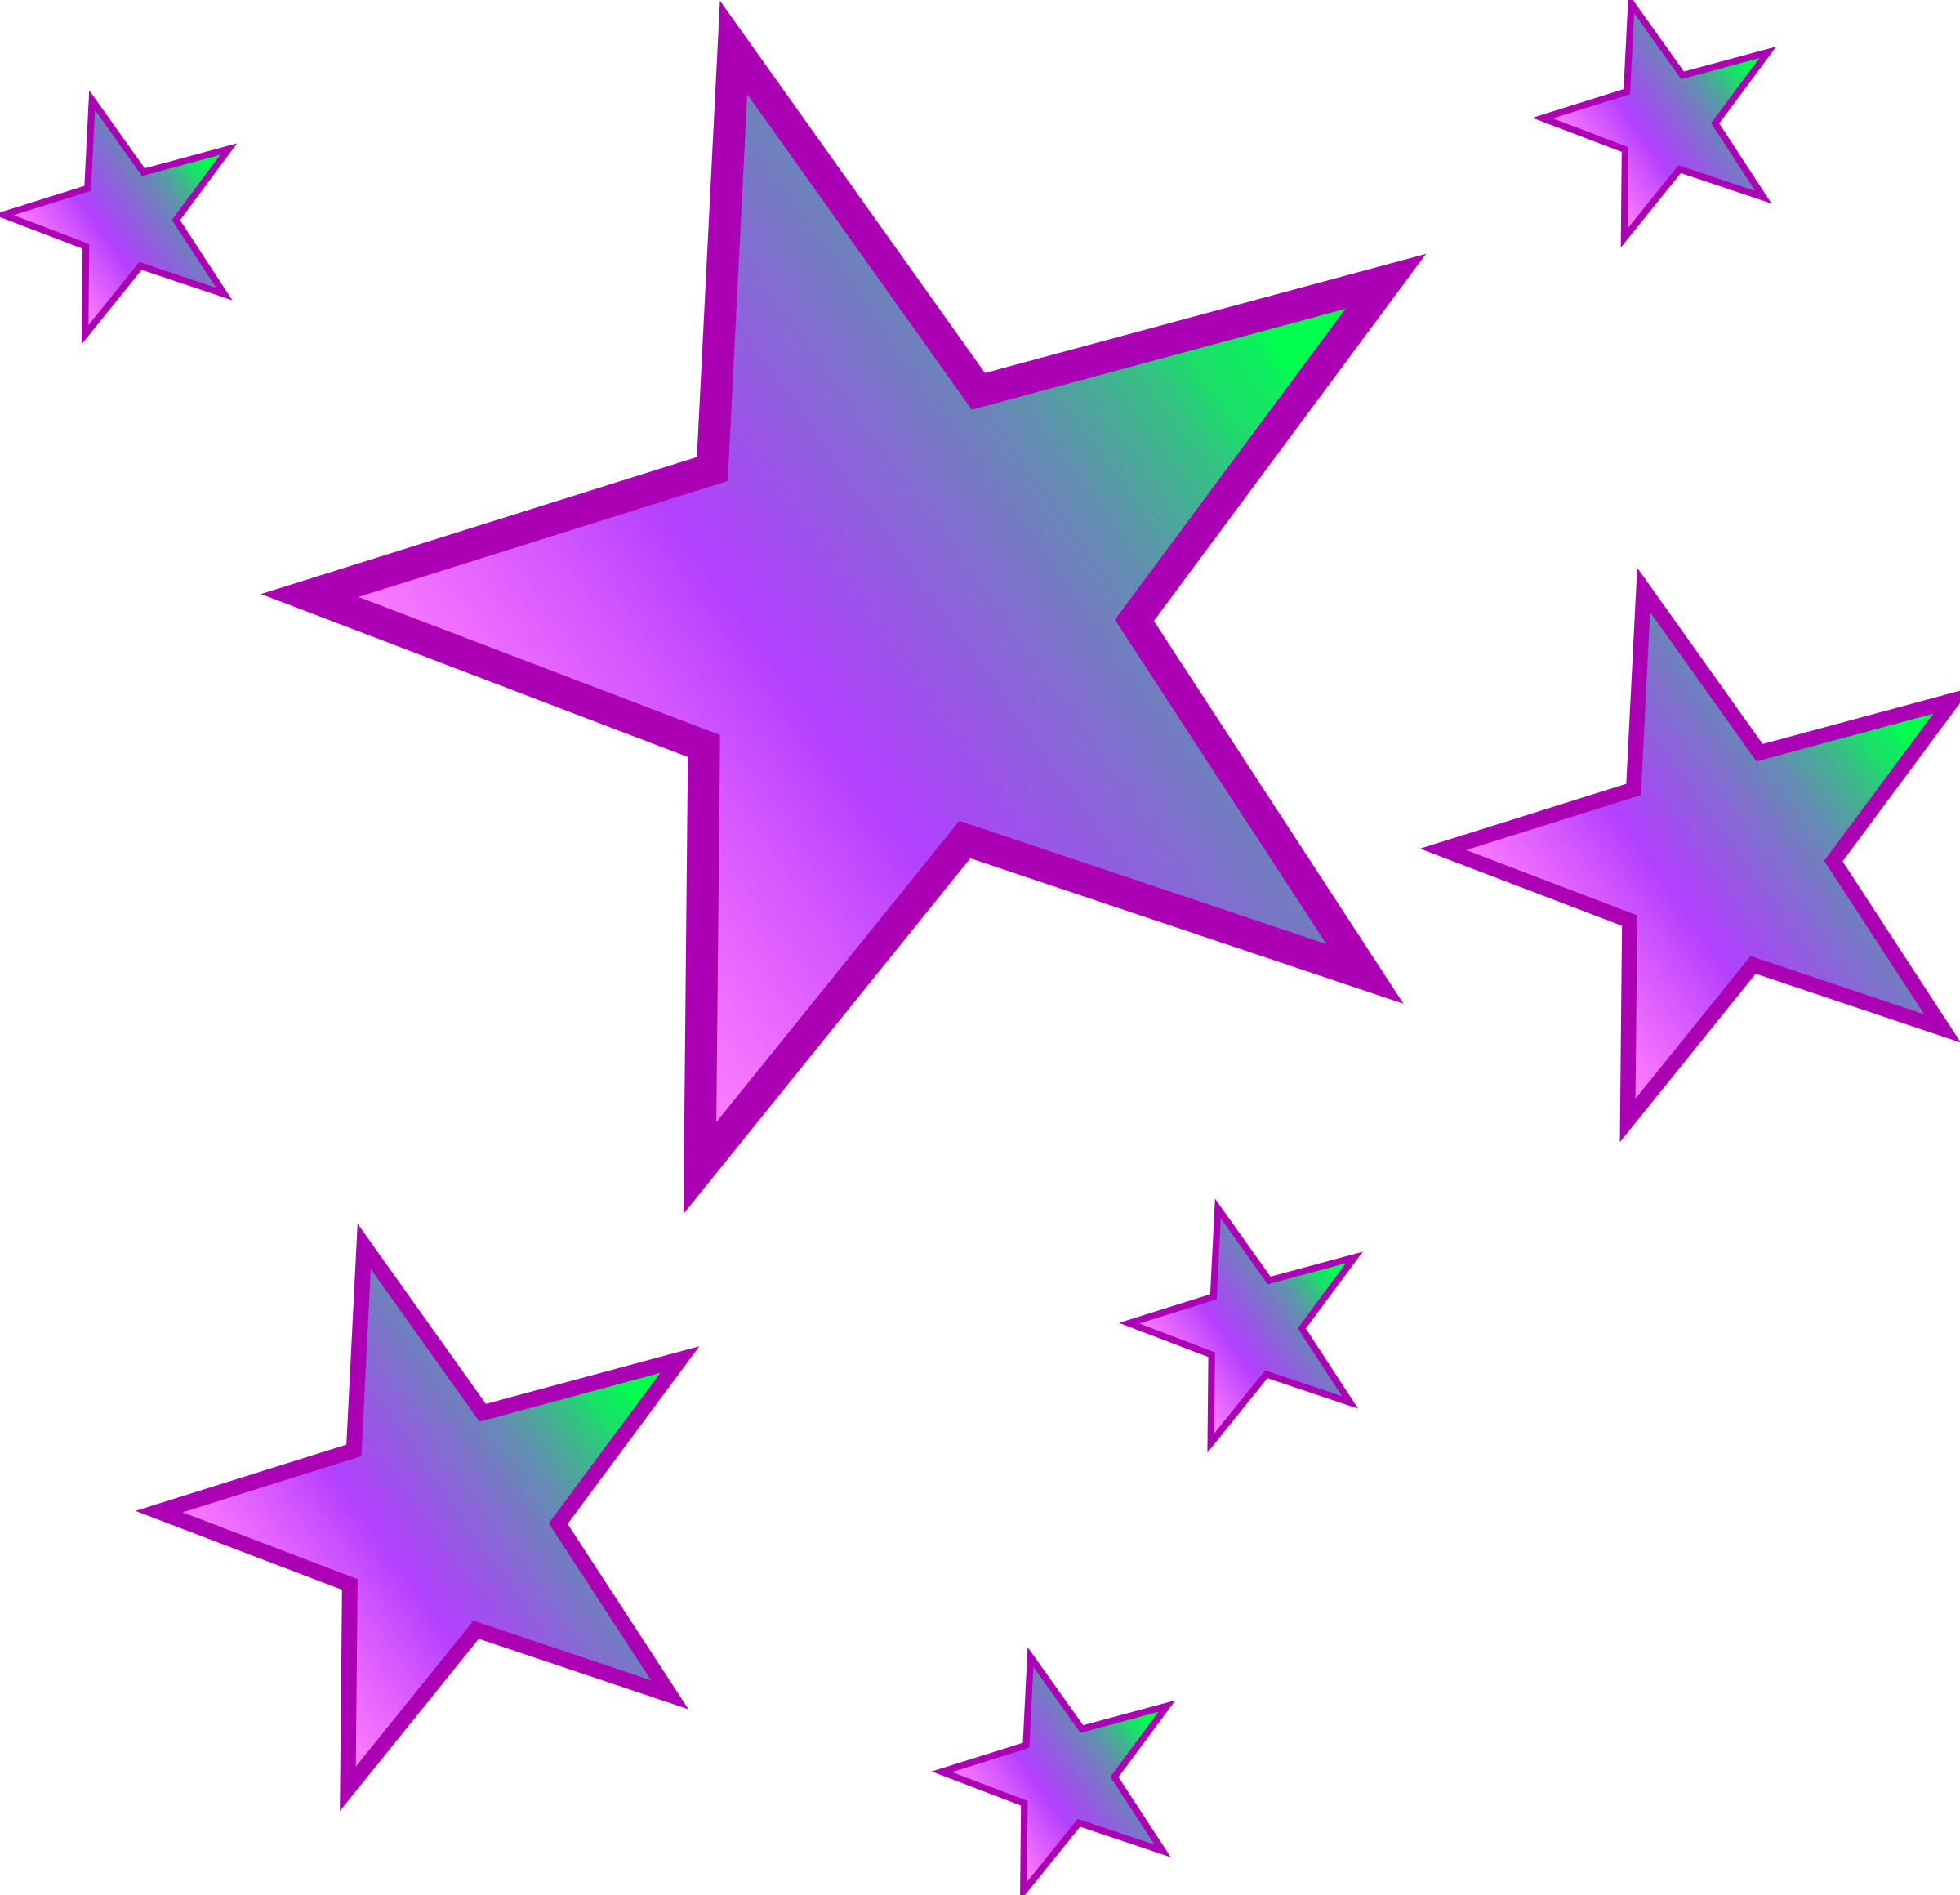 Clipart star cluster clip art freeuse stock Stars clipart - ClipartFest clip art freeuse stock